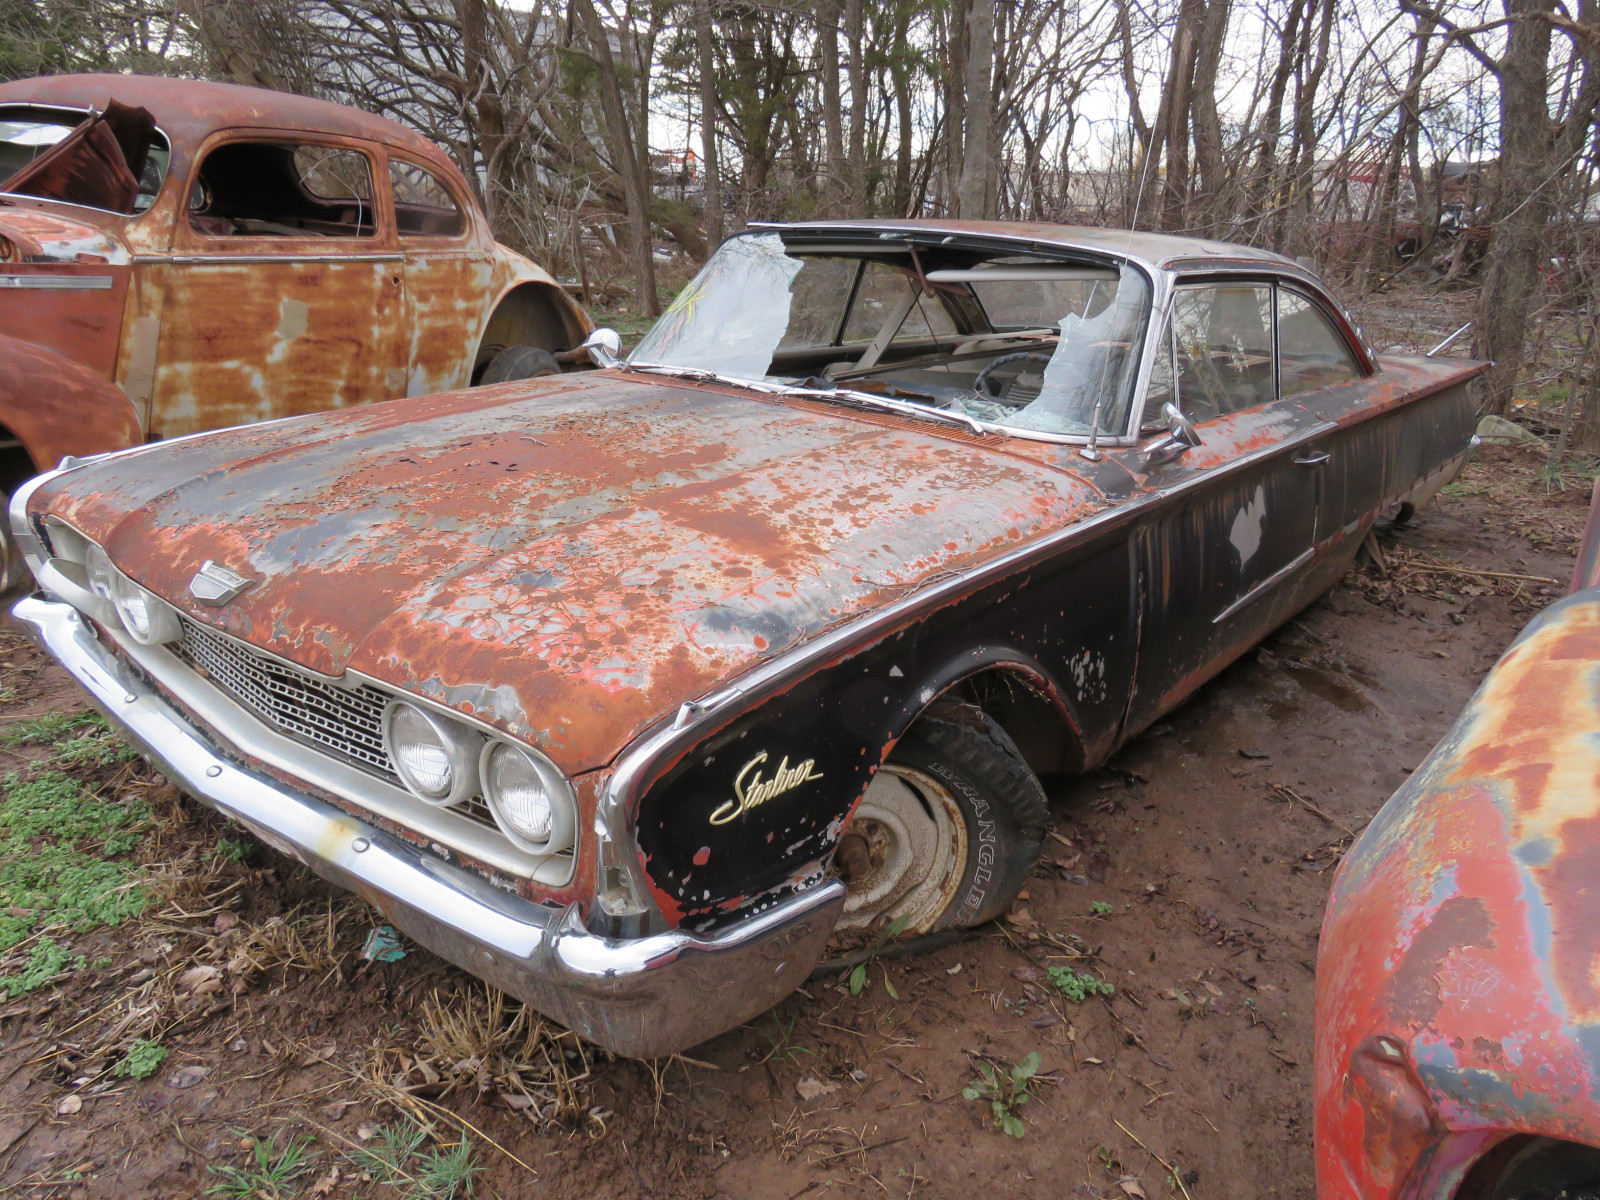 1961 Ford Starliner 2dr HT 153X114514 - Image 2